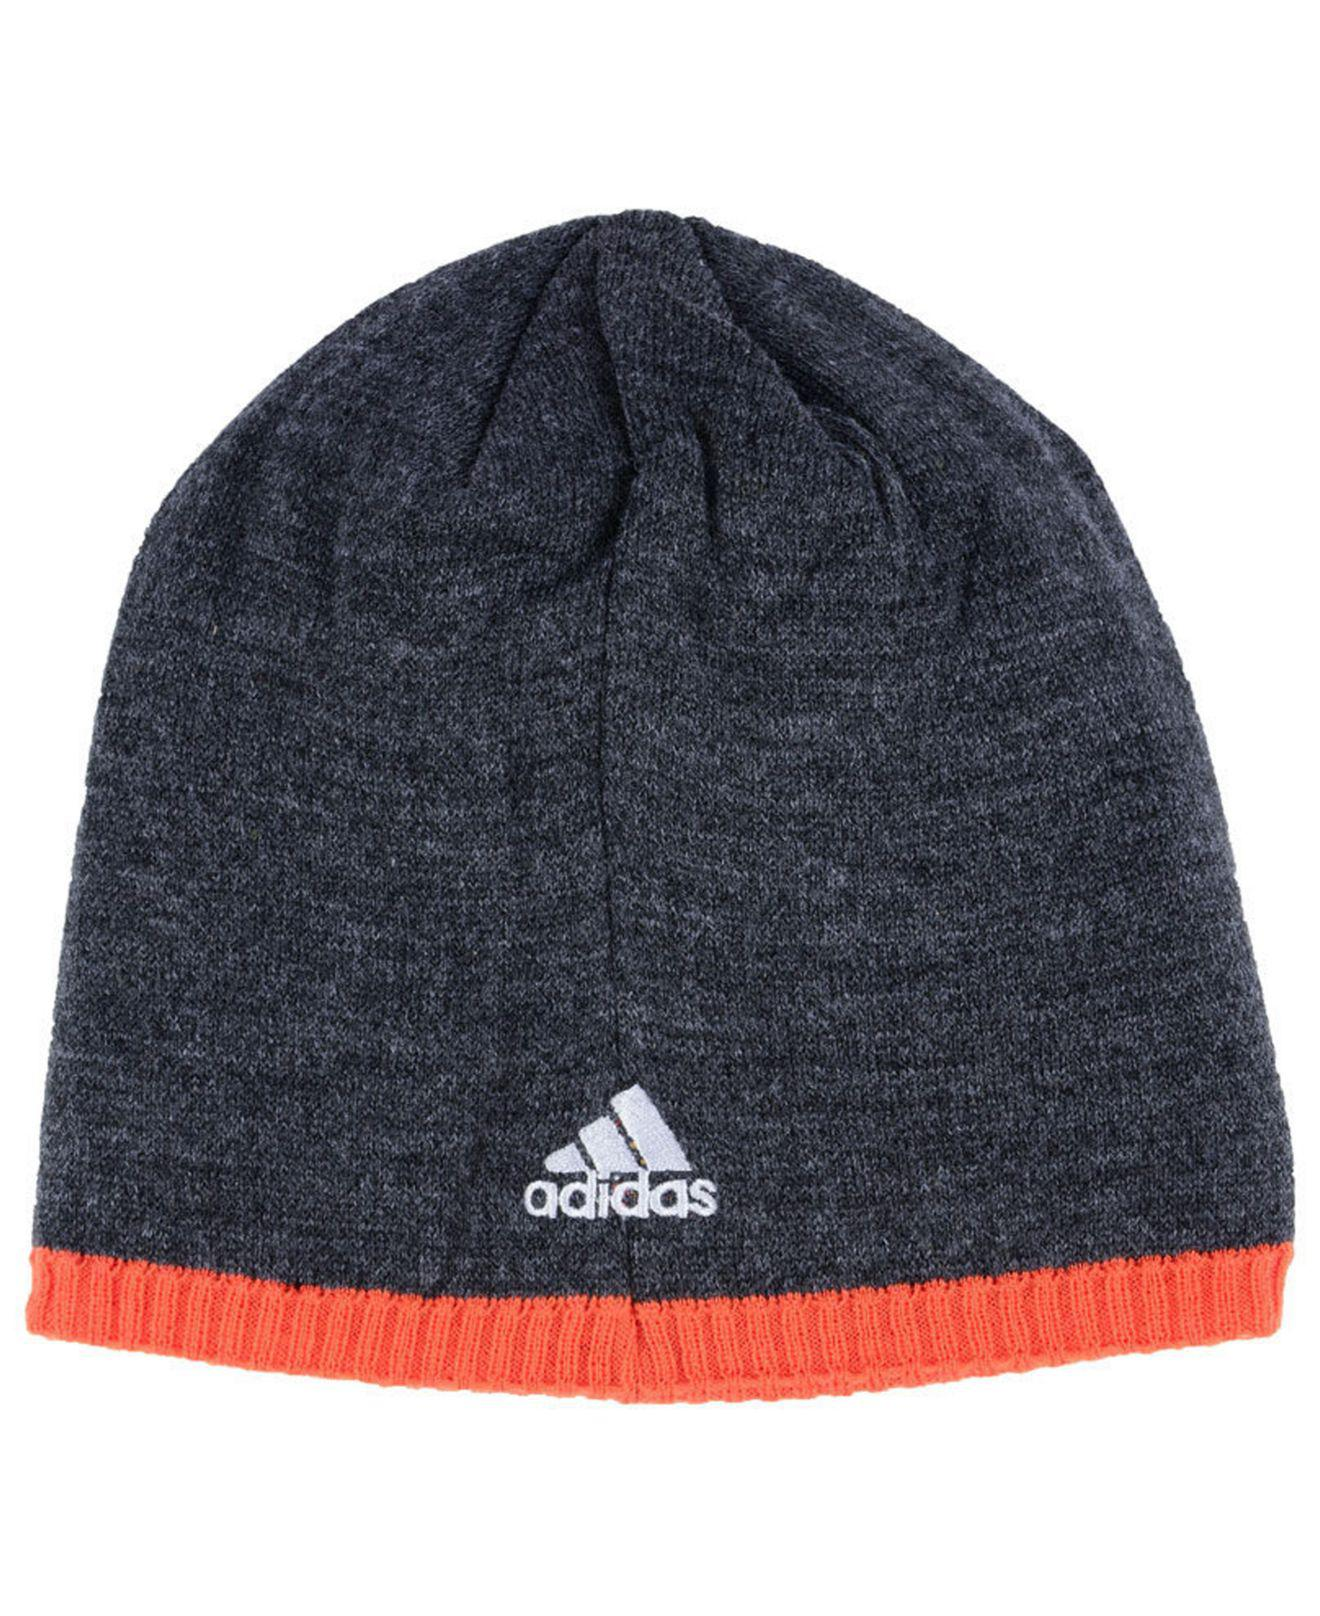 check out 0657f 0a0b3 ... italy lyst adidas new york islanders heather beanie in blue for men  cc4d1 33e5e